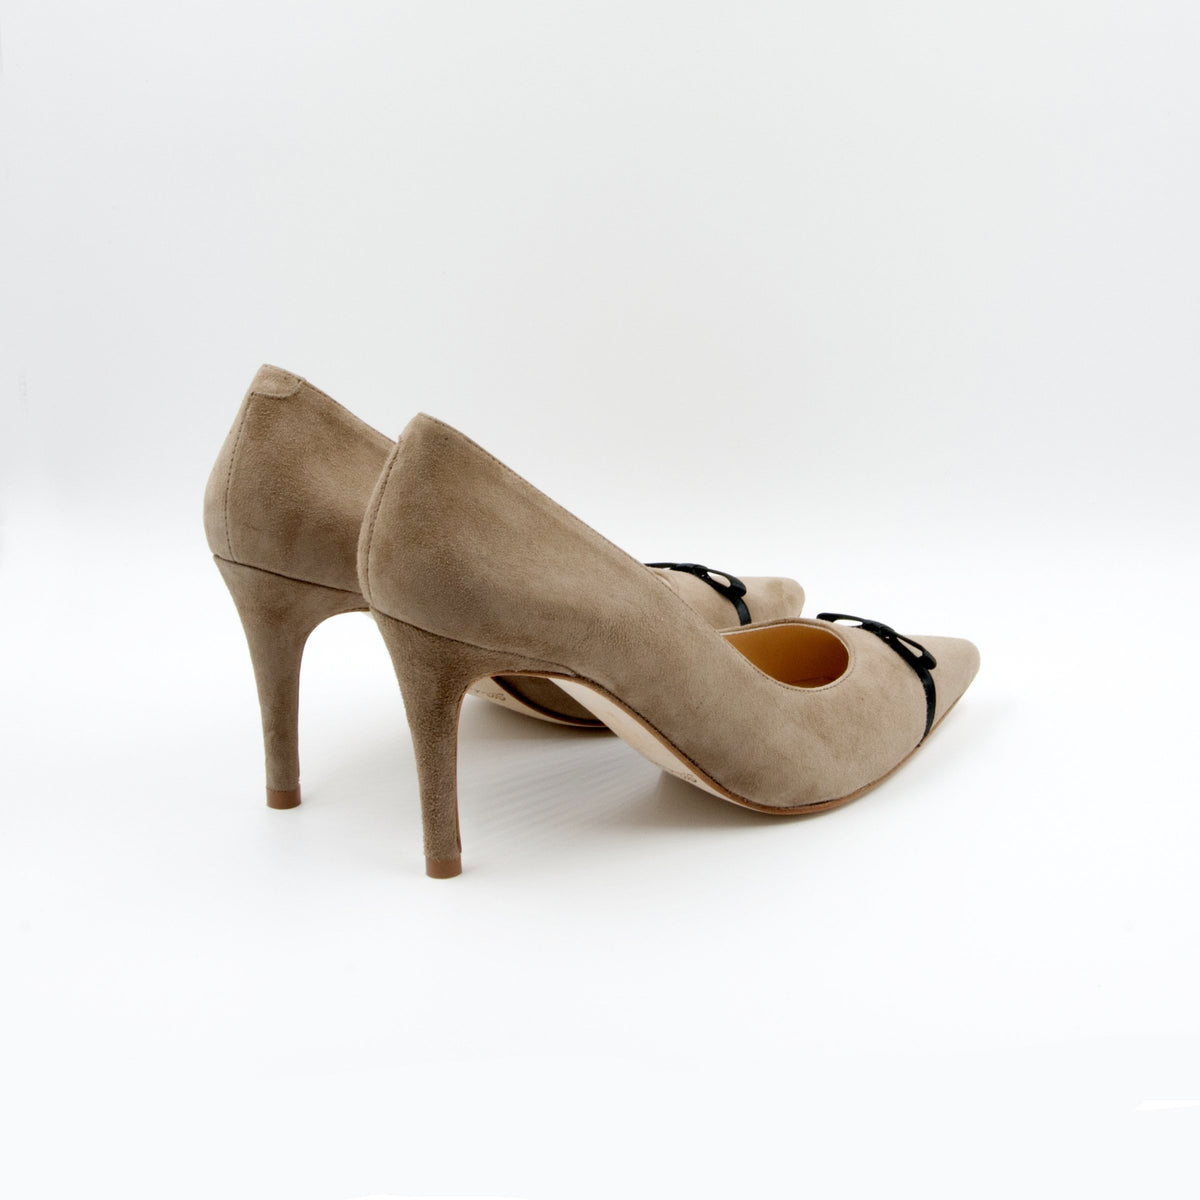 Lola Domecq Priscila in Camel hand made stilettos